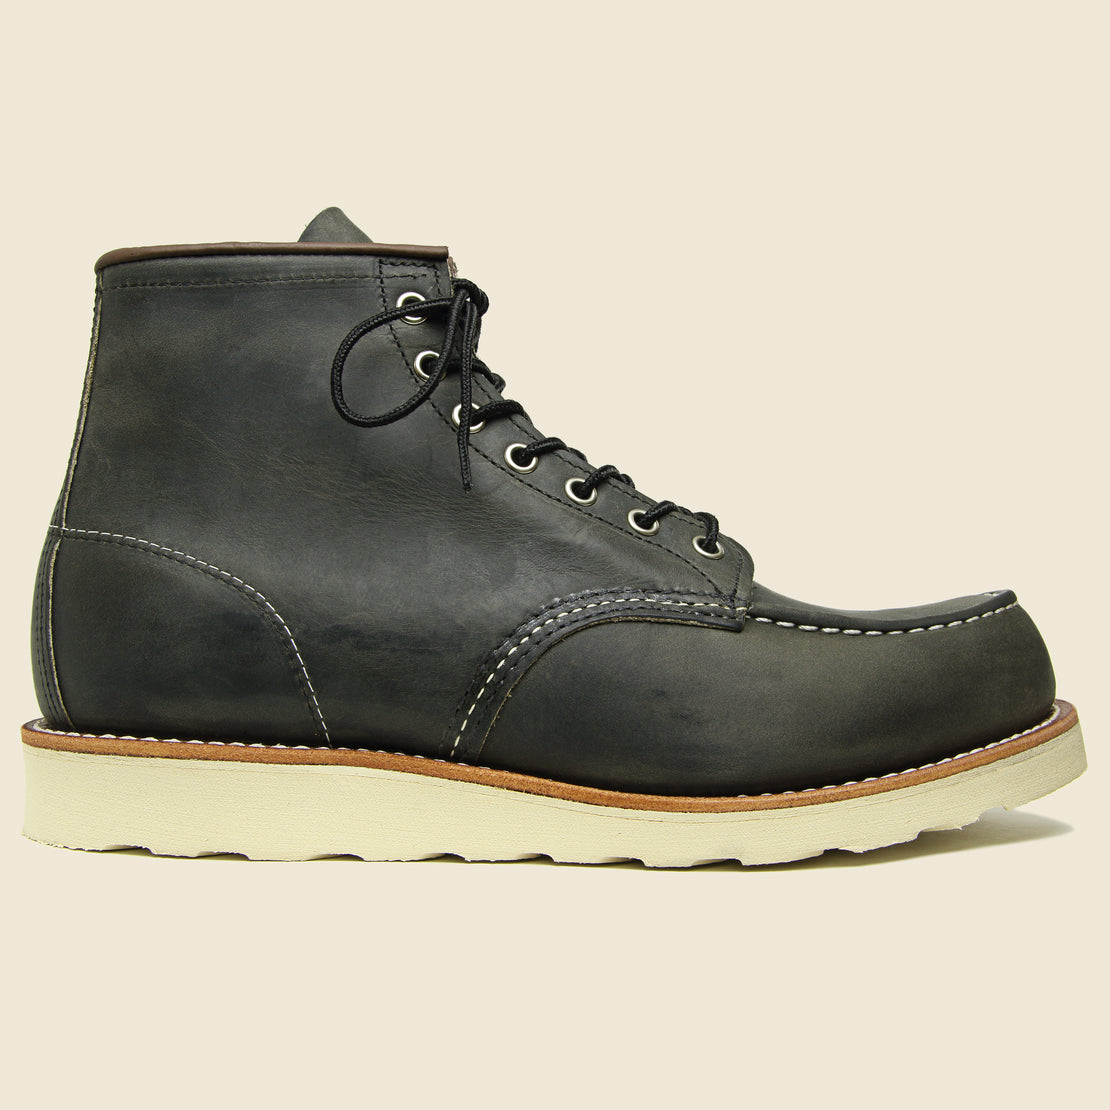 "Red Wing 6"" Moc Toe - Charcoal Rough & Tough"